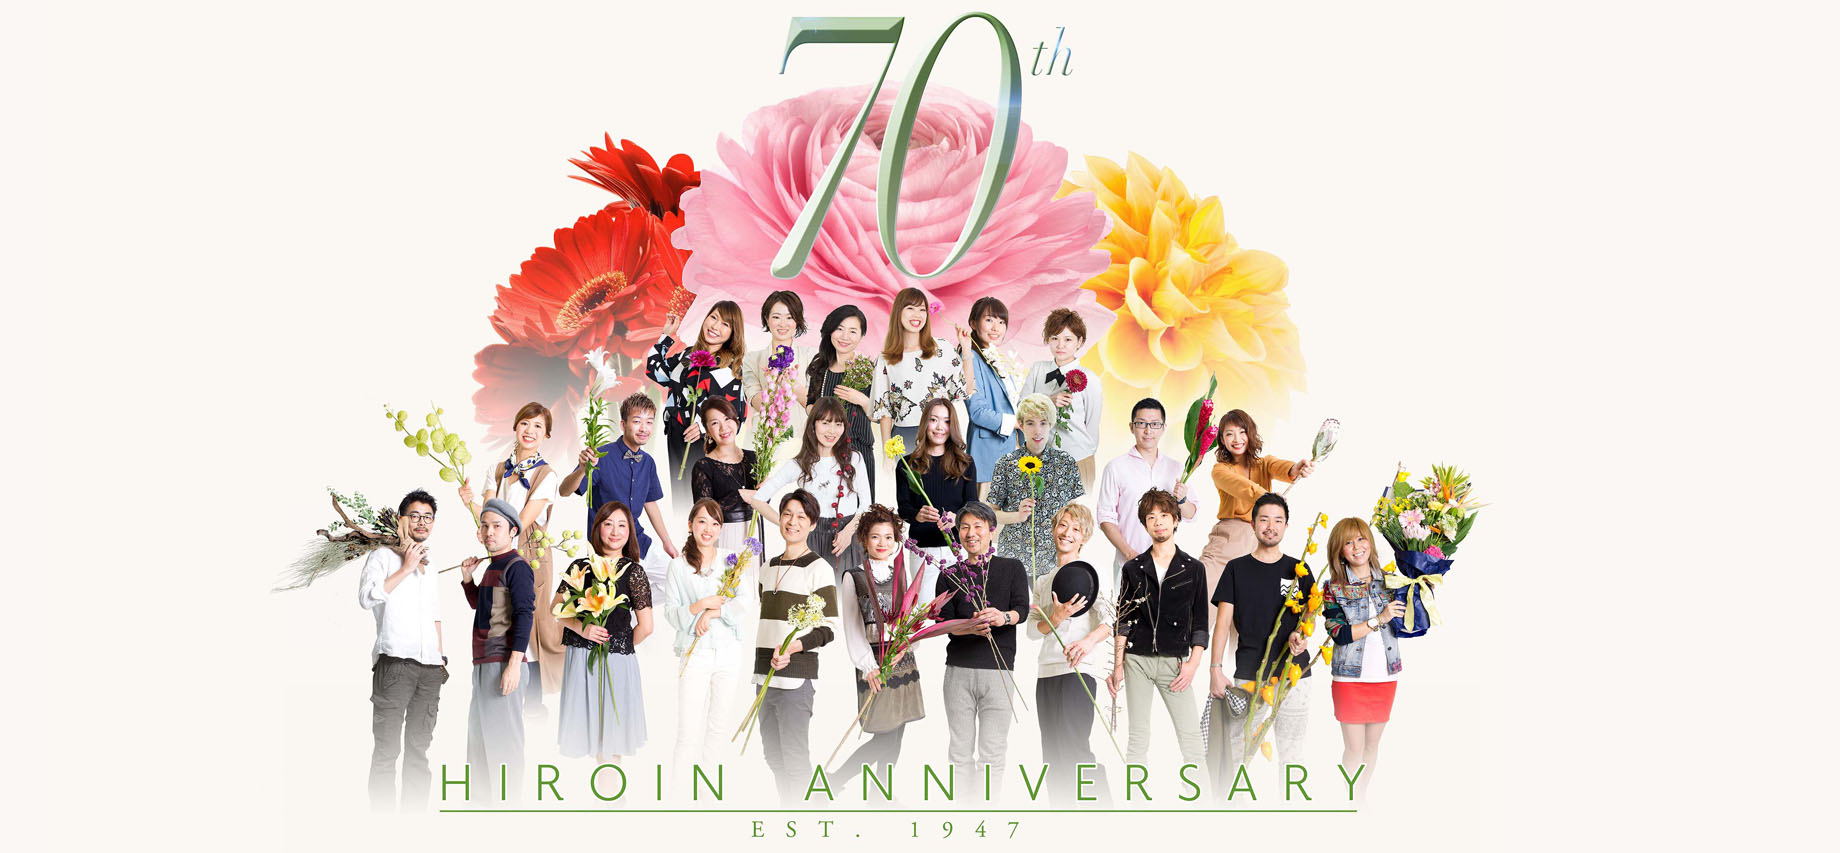 HIROIN website banner anniv